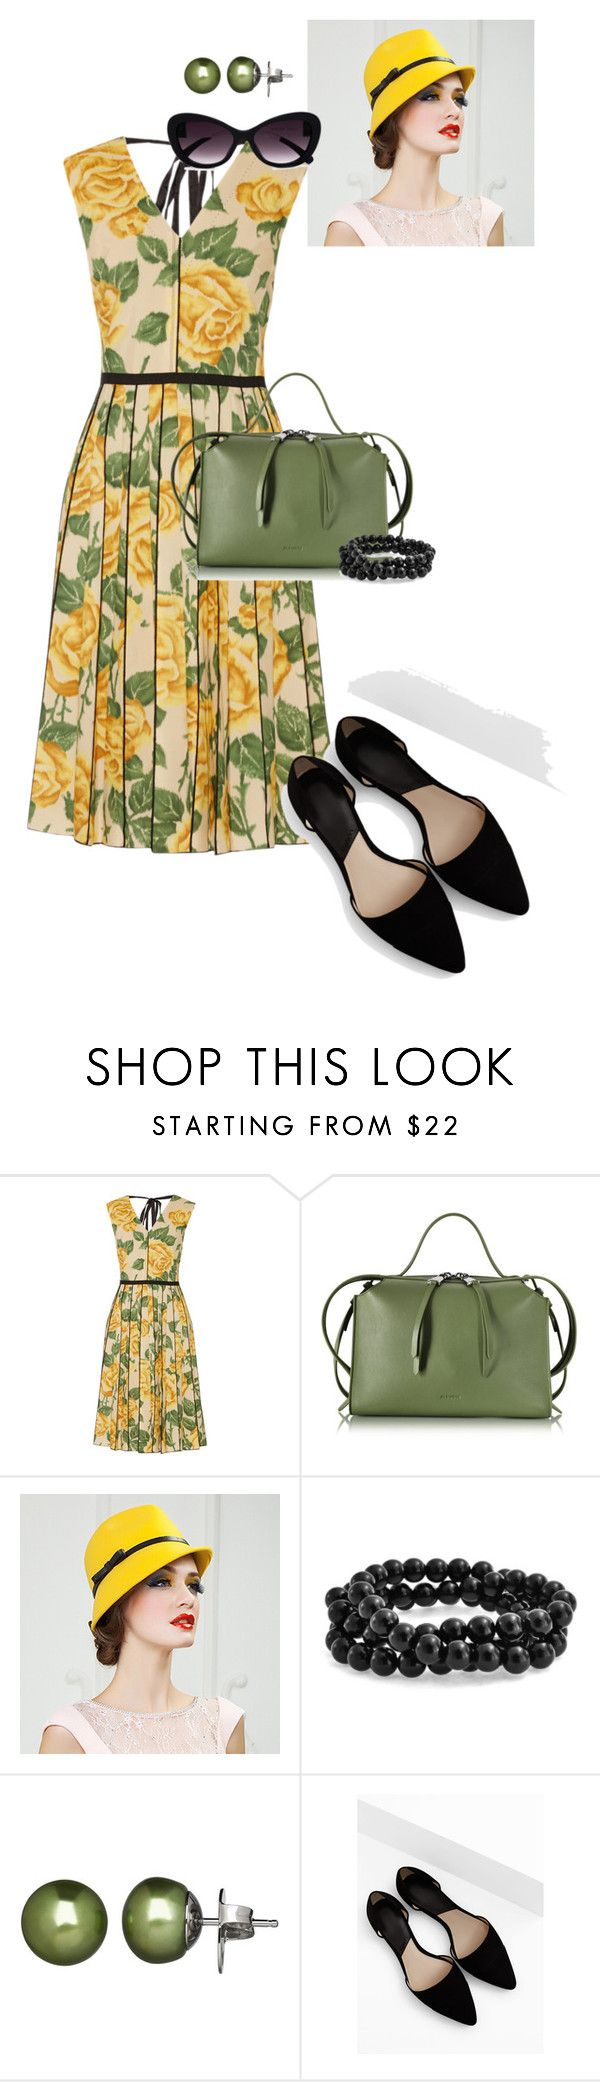 """сложный романтизм"" by zlata-402 on Polyvore featuring мода, Marc Jacobs, Jil Sander, Bling Jewelry, Honora и MANGO"